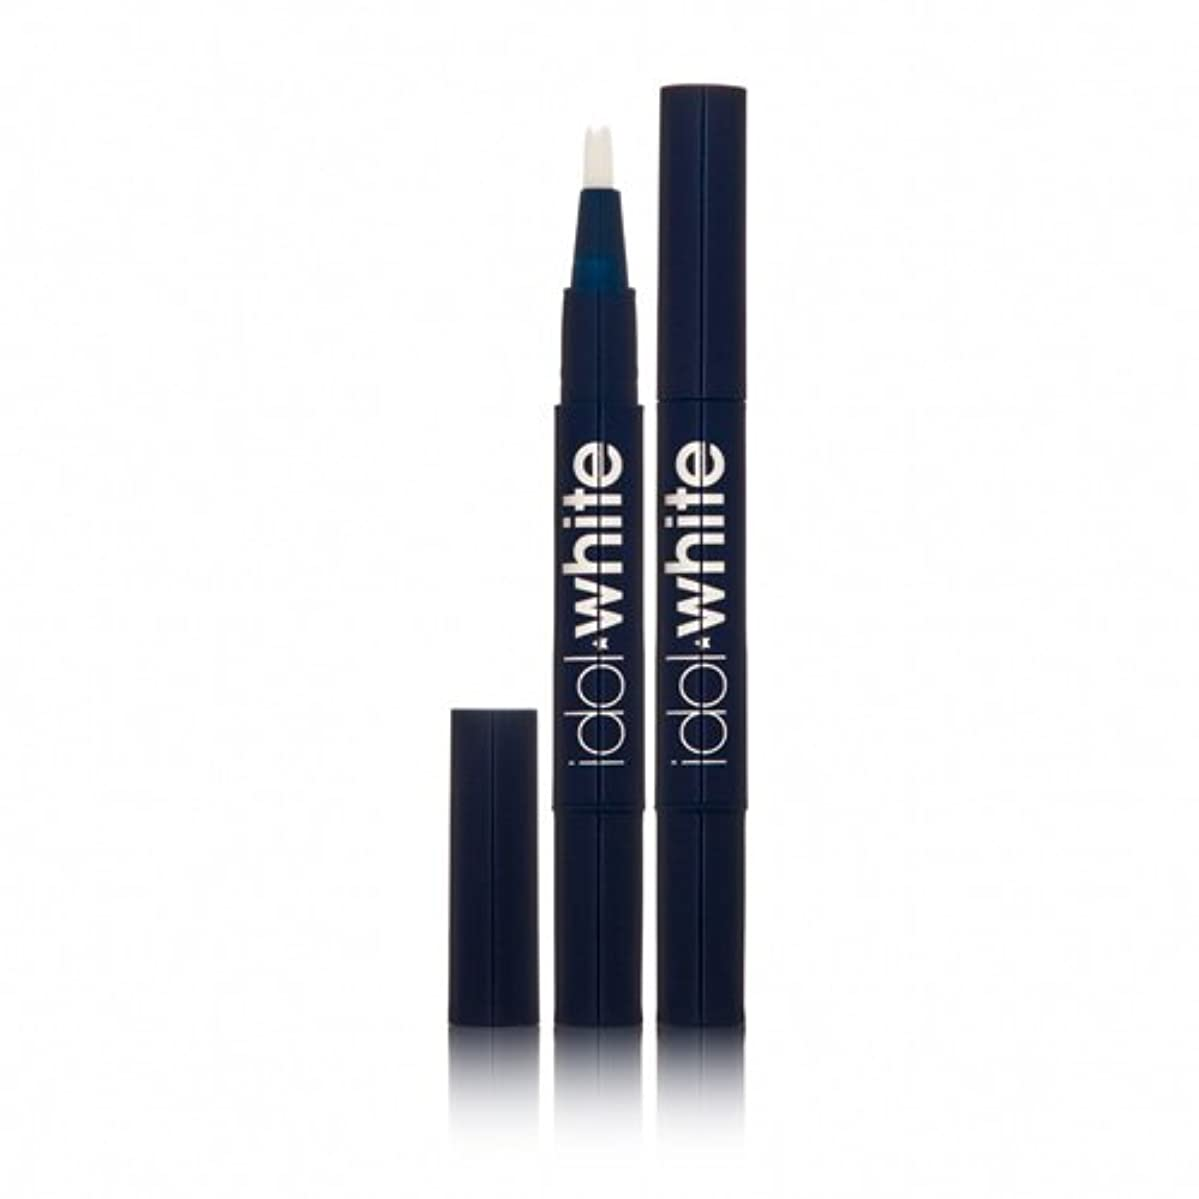 Idol White Teeth Whitening Pen 2 Pens - 30 Day System